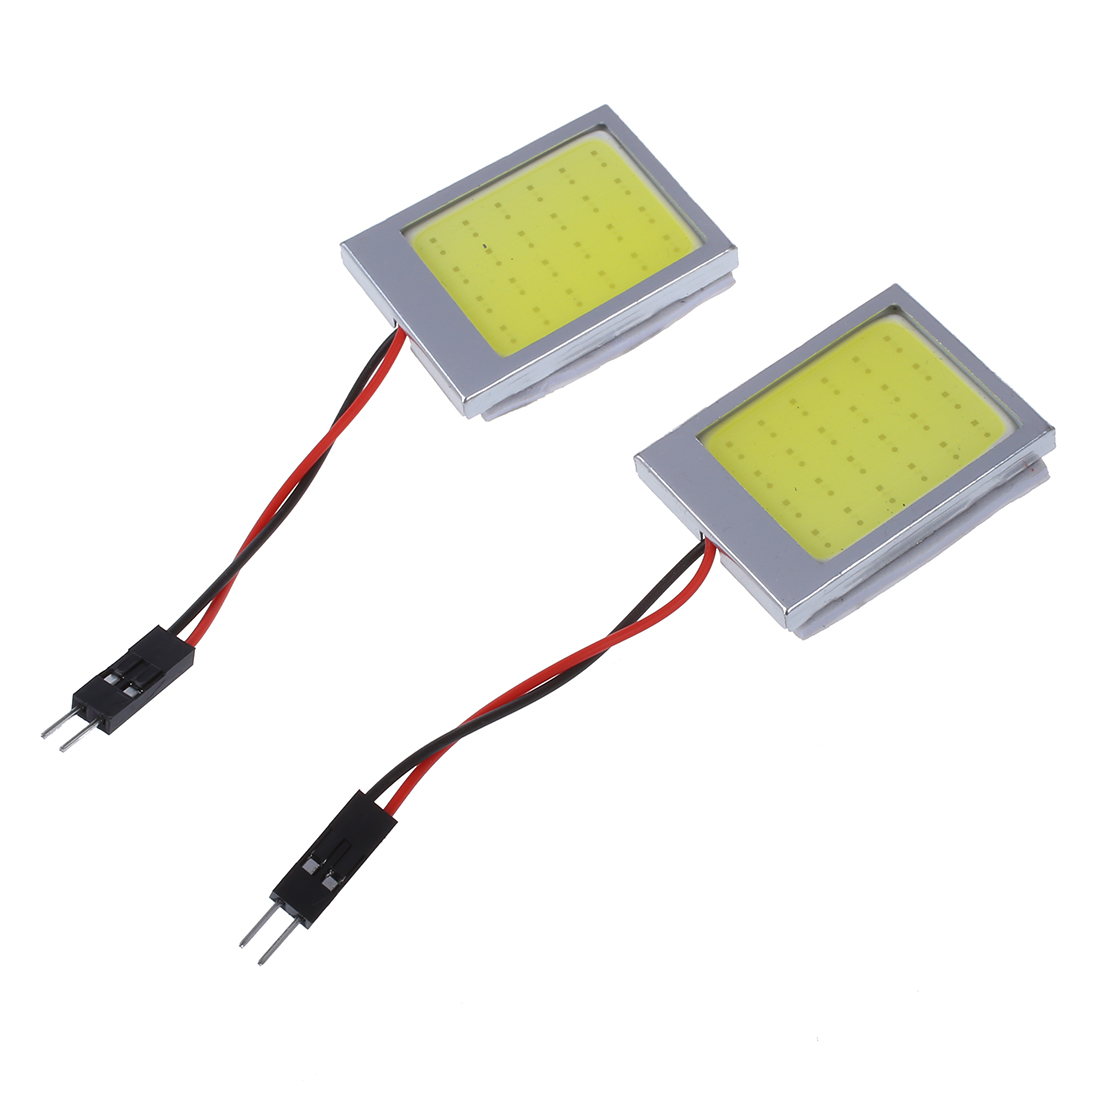 2 X T10 Panel 24 SMD COB LED Car Reading Bulb / Ceiling Lamp White + T10 / BA9S / Dome Festoon Adapters 100x car dome light 18 smd 5630 18smd 5730 led car interior roof panel reading auto with t10 ba9s festoon 2 adapters white 12v